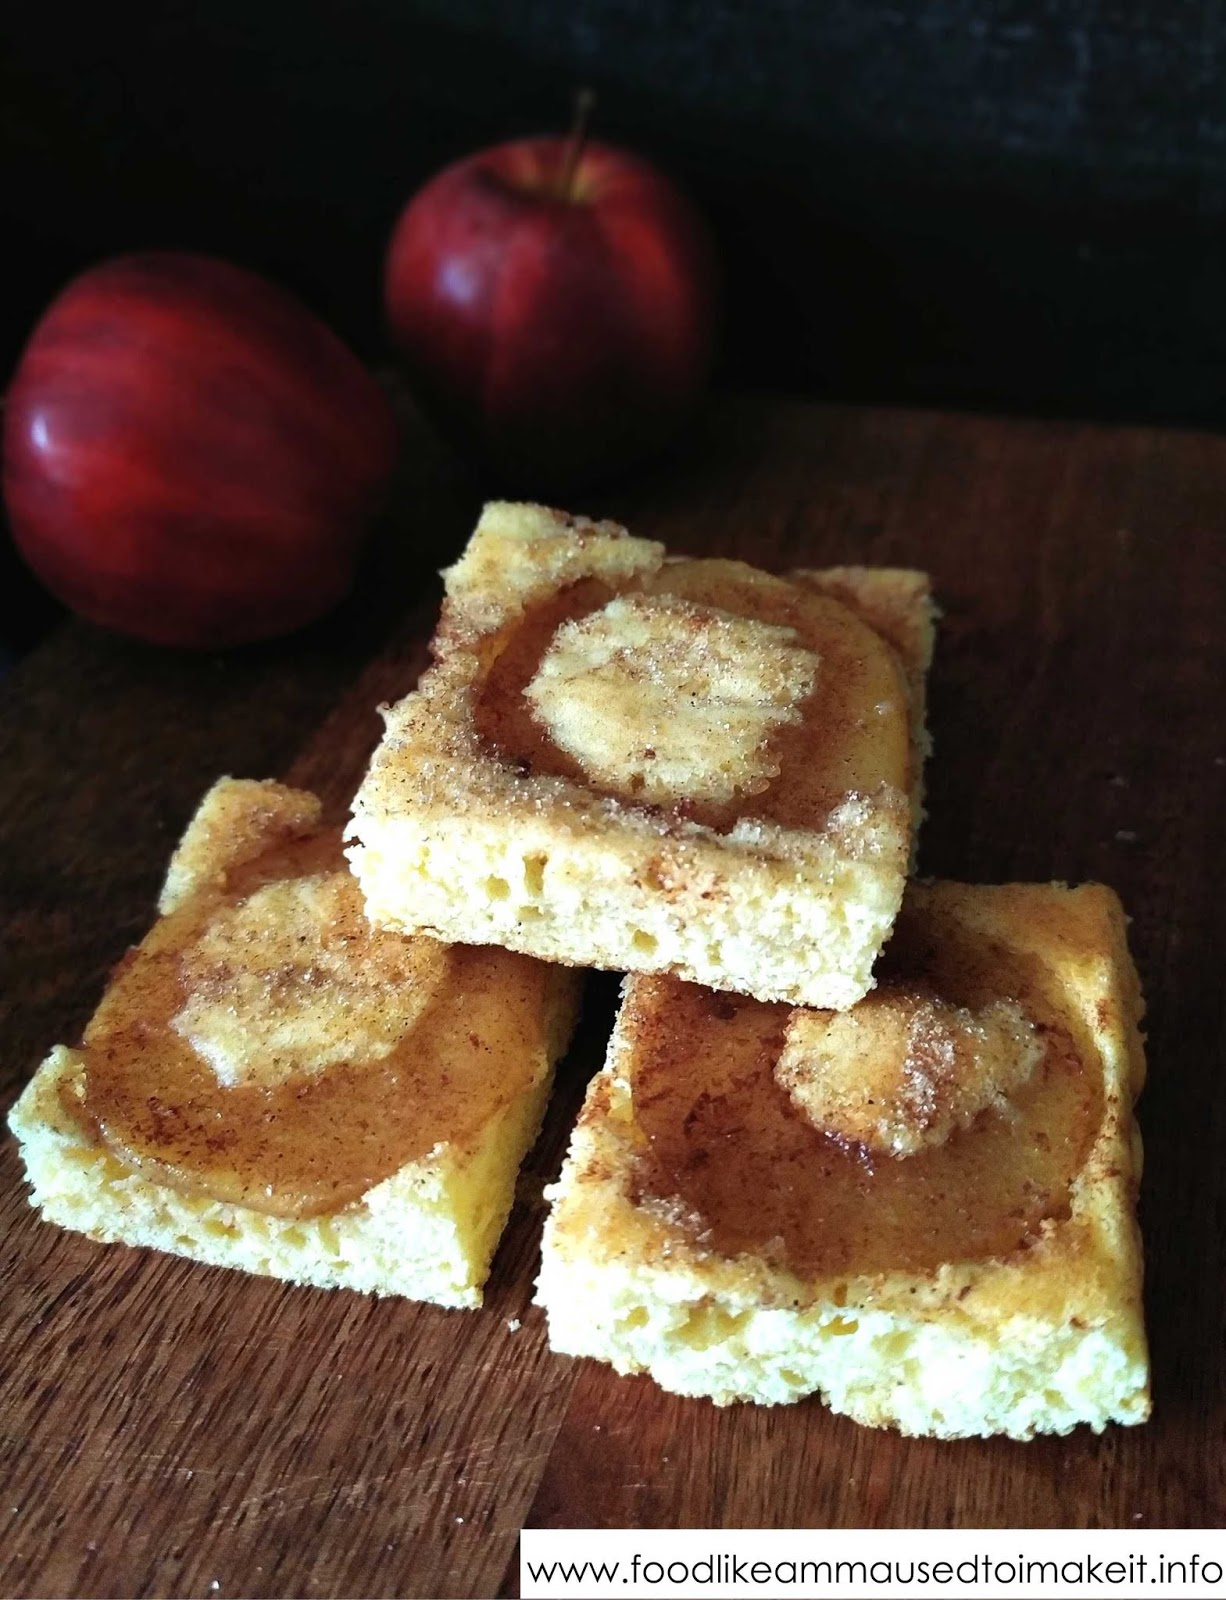 Apple Sponge Tart Recipe